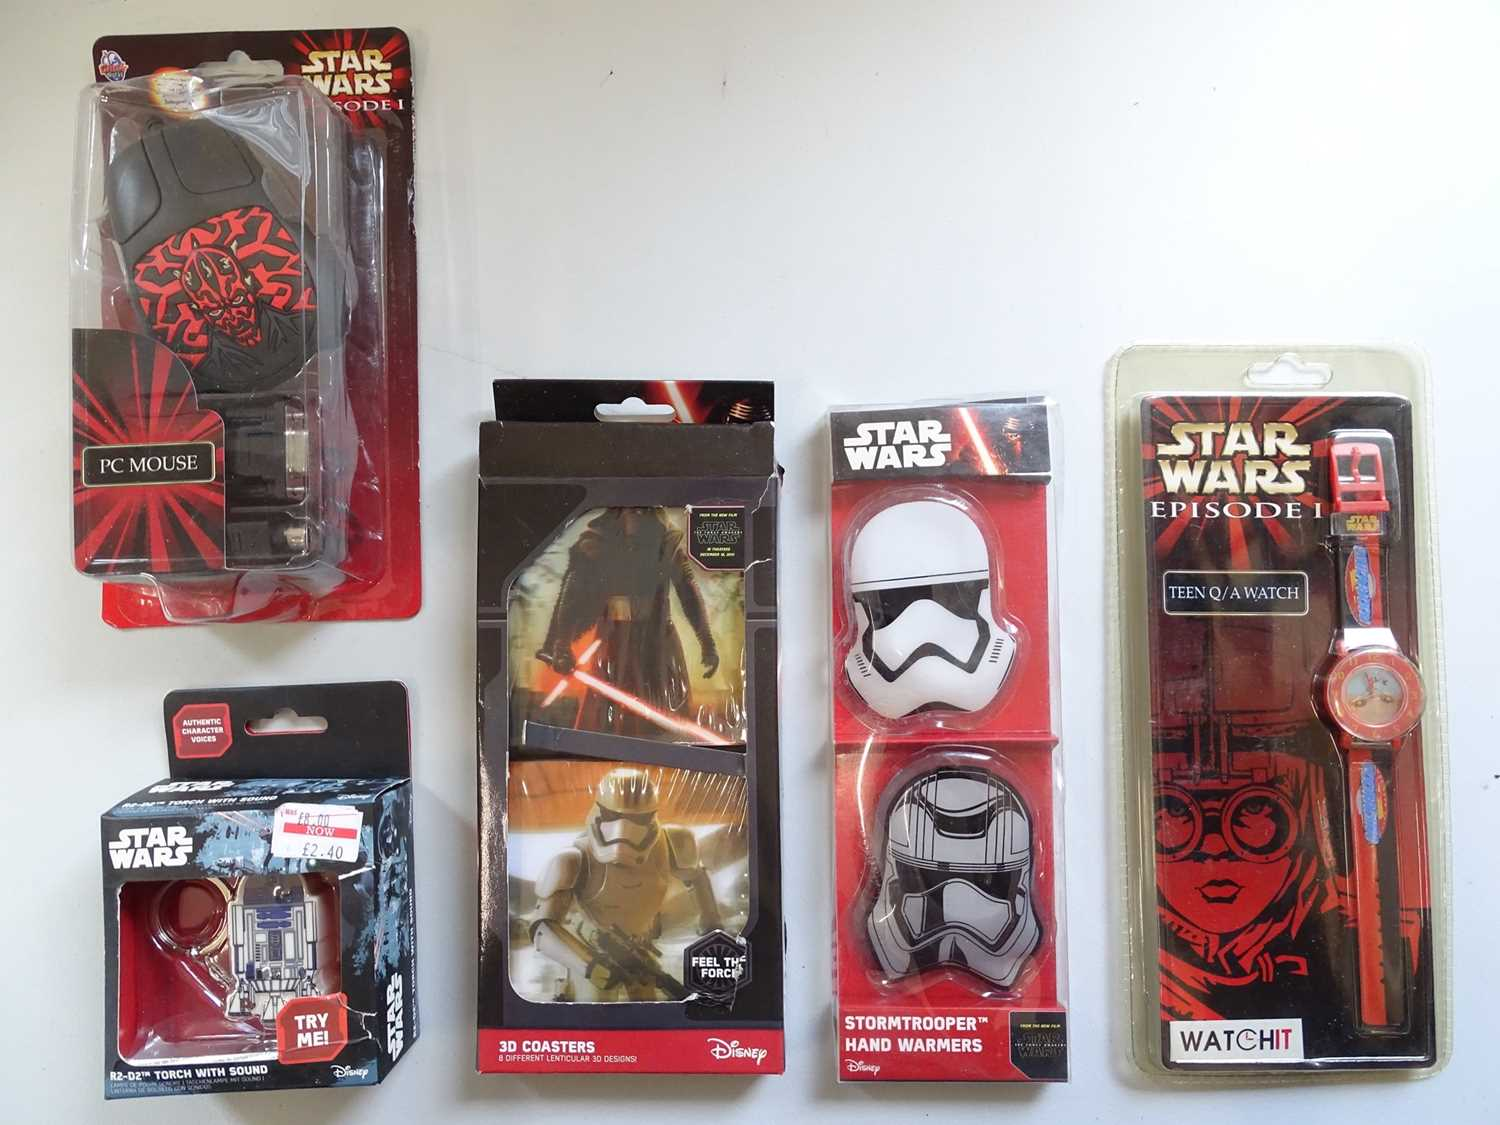 A large group of STAR WARS collectable items including a Darth Vader money bank together with books, - Image 8 of 8